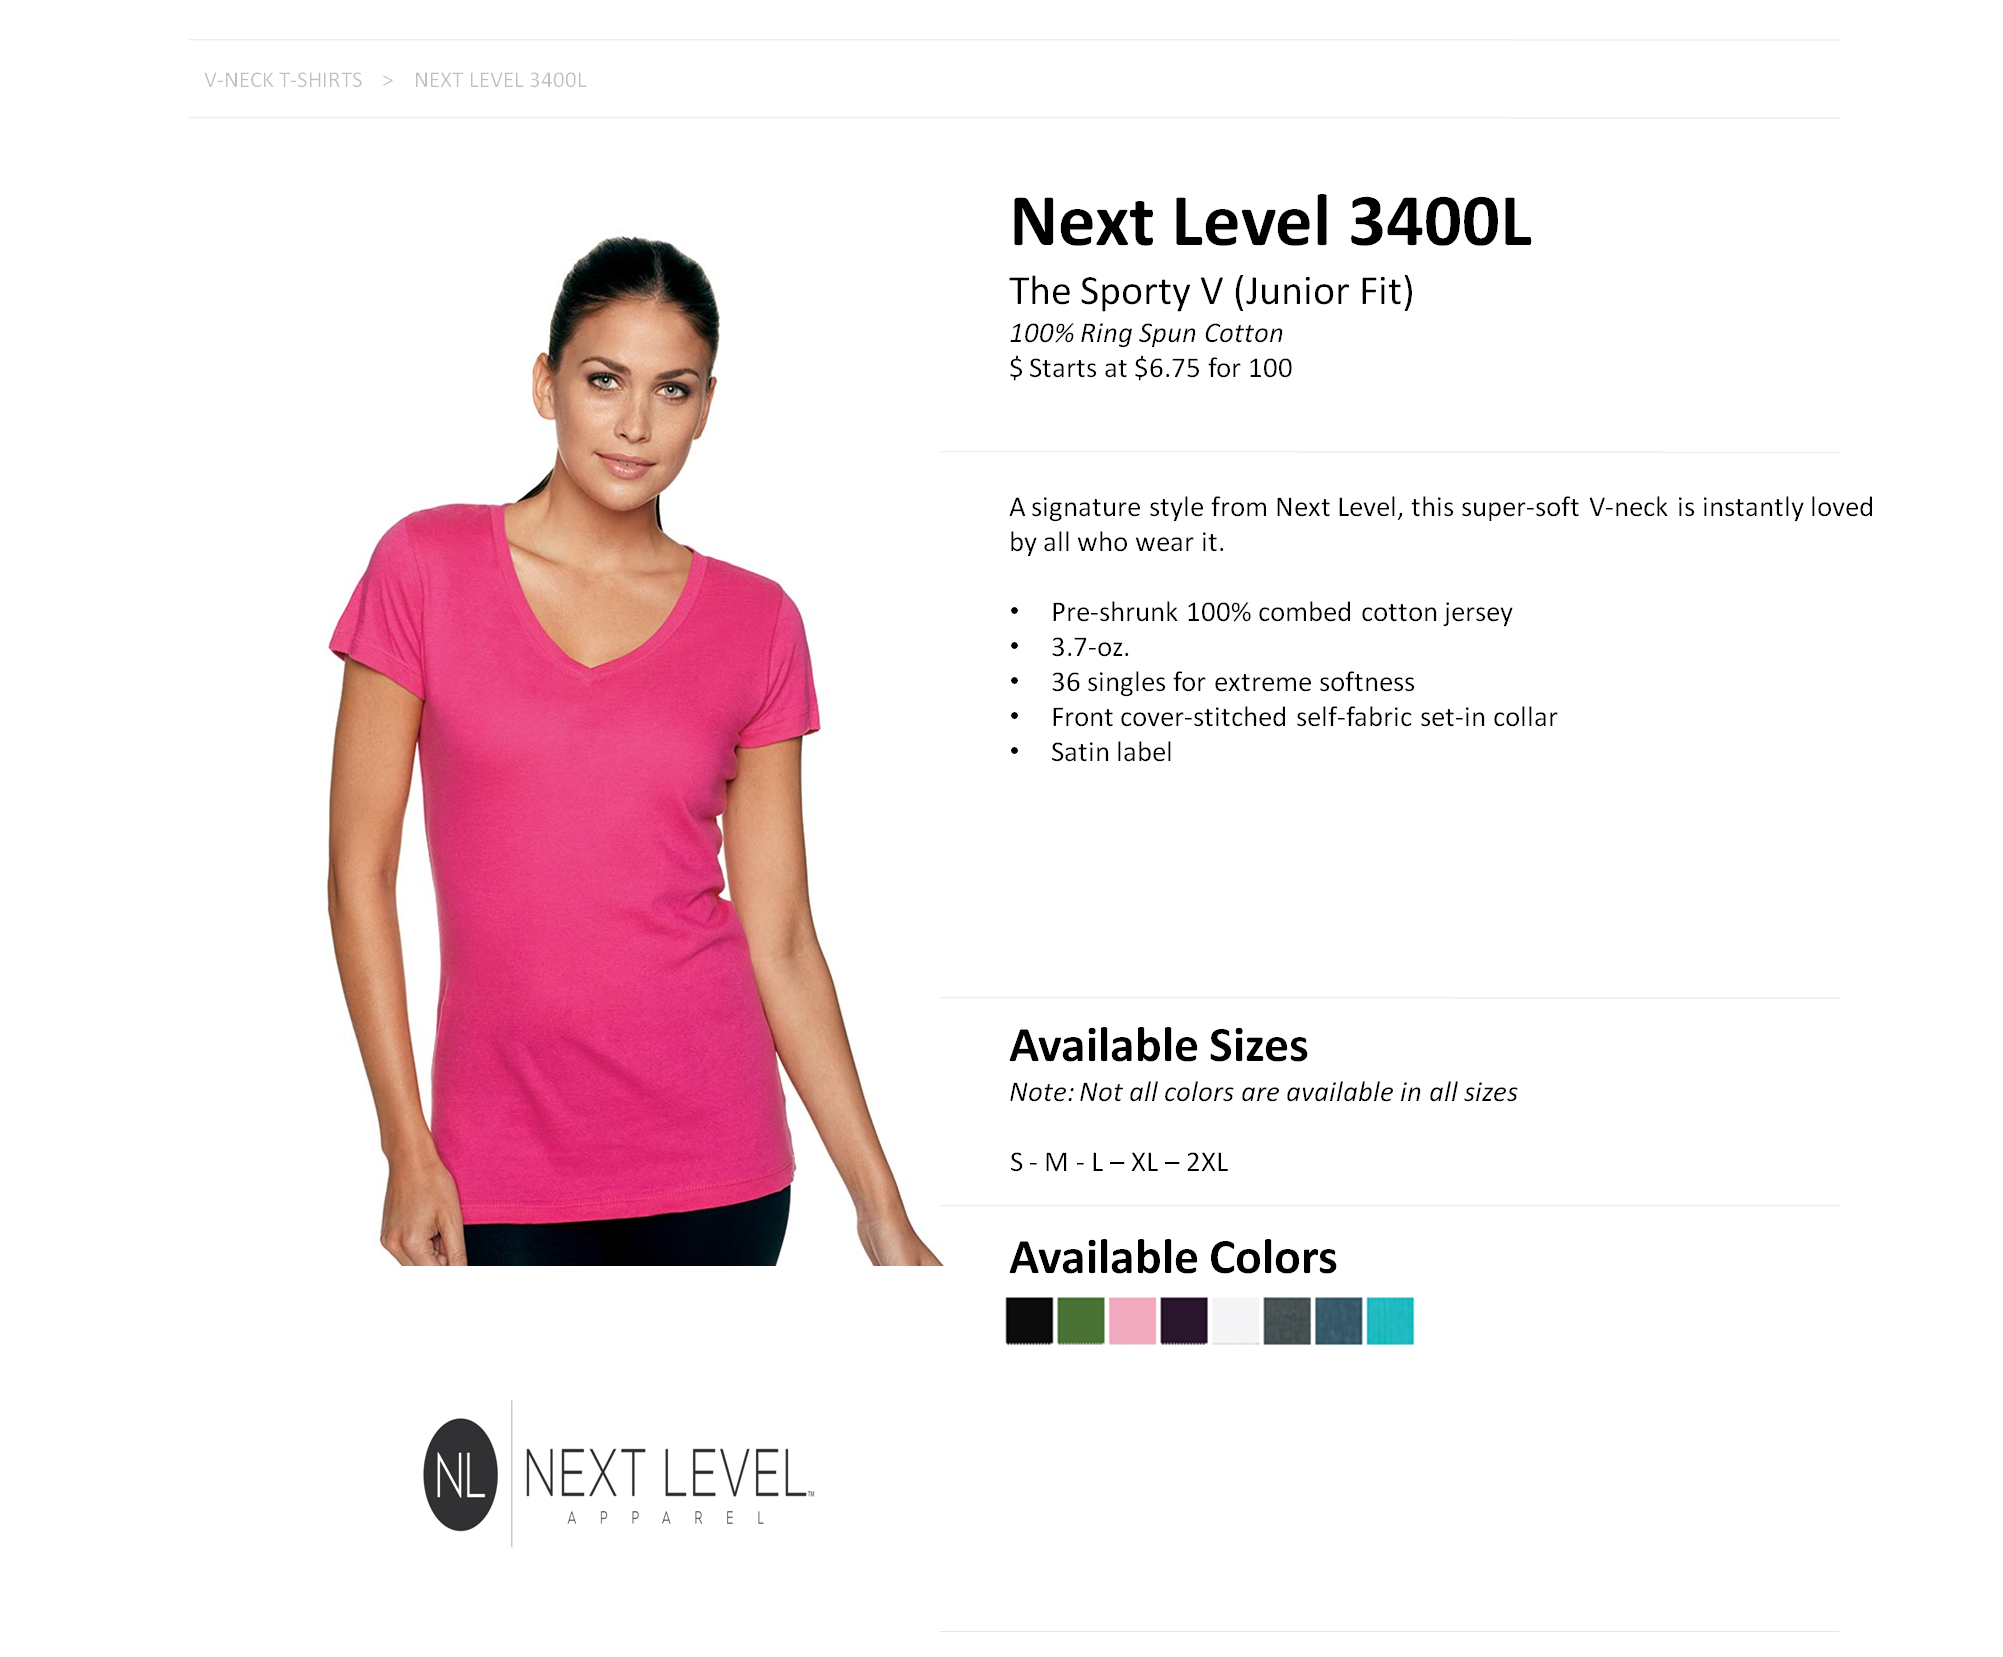 c0692067 3400L Next Level Ladies' Sporty V-Neck Tee — American Icon Merchandise